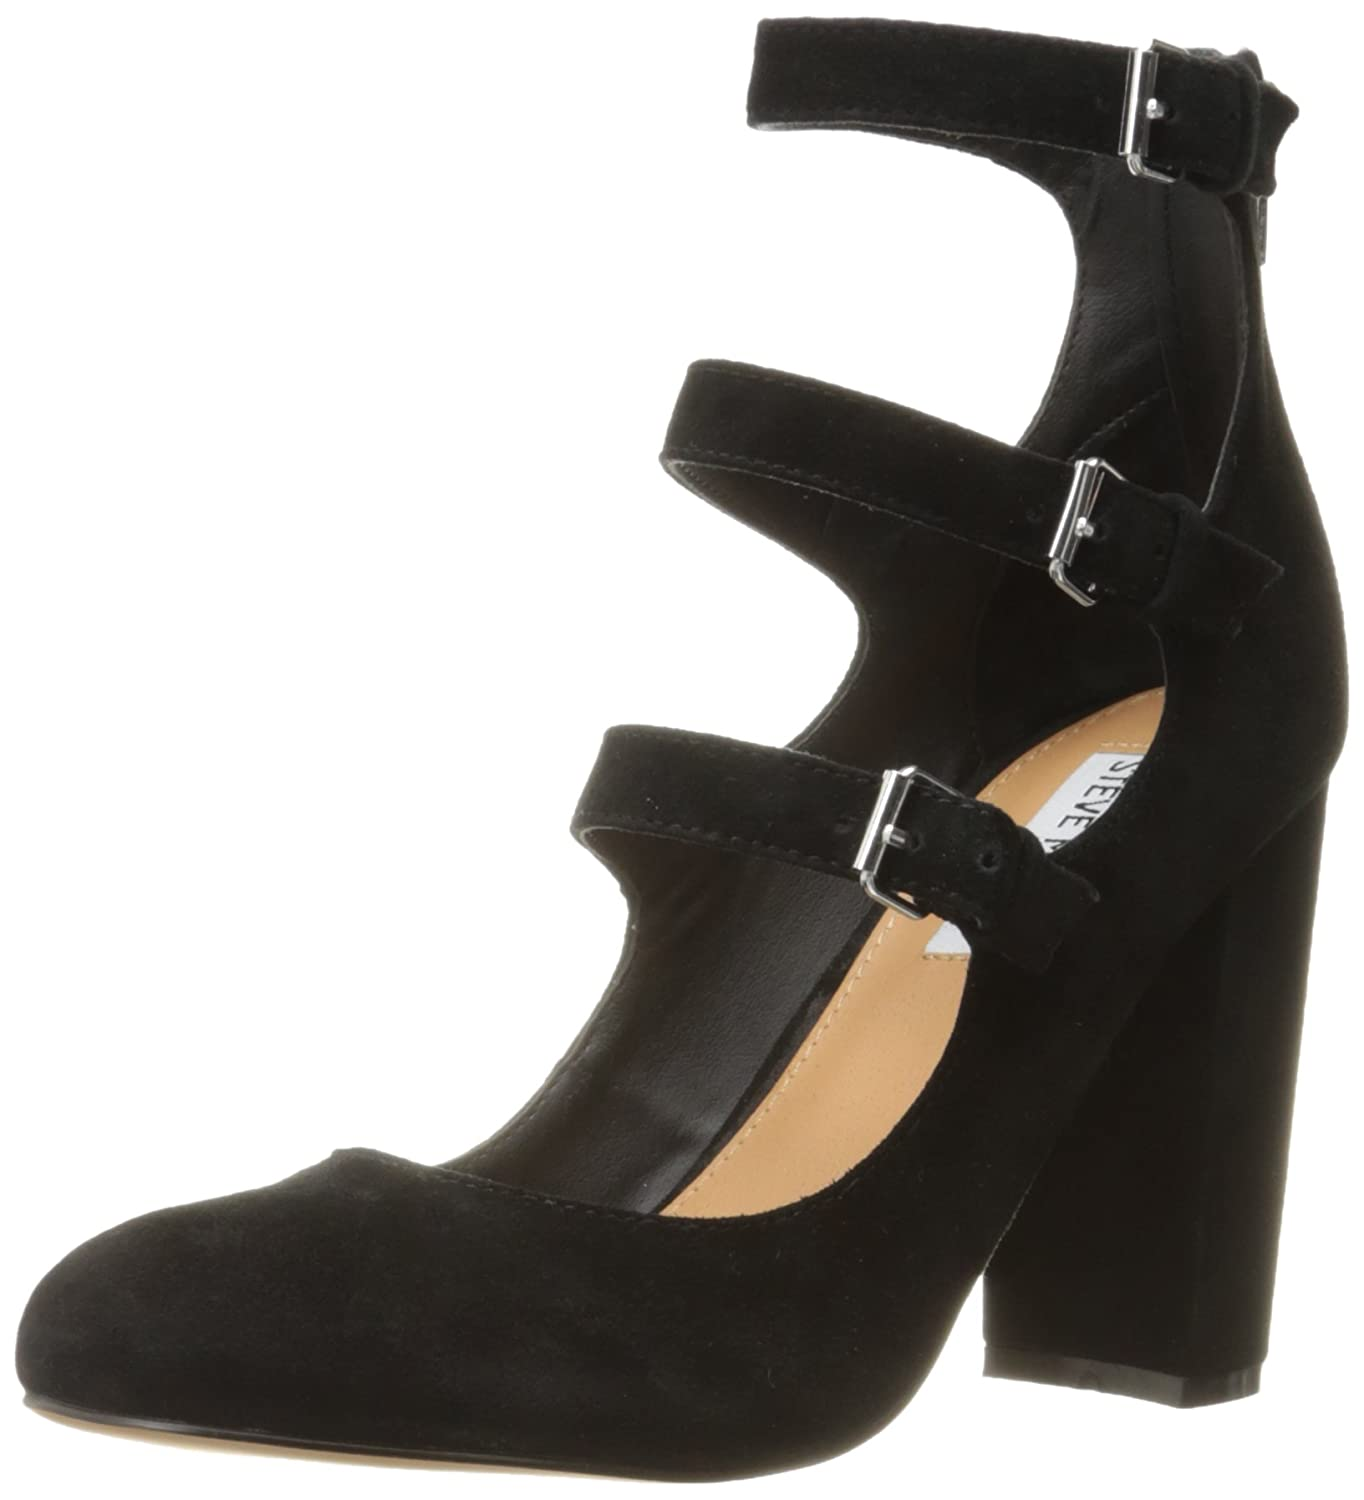 Amazon.com | Steve Madden Women's Veruca dress Pump, Black Suede, 8.5 M US  | Pumps